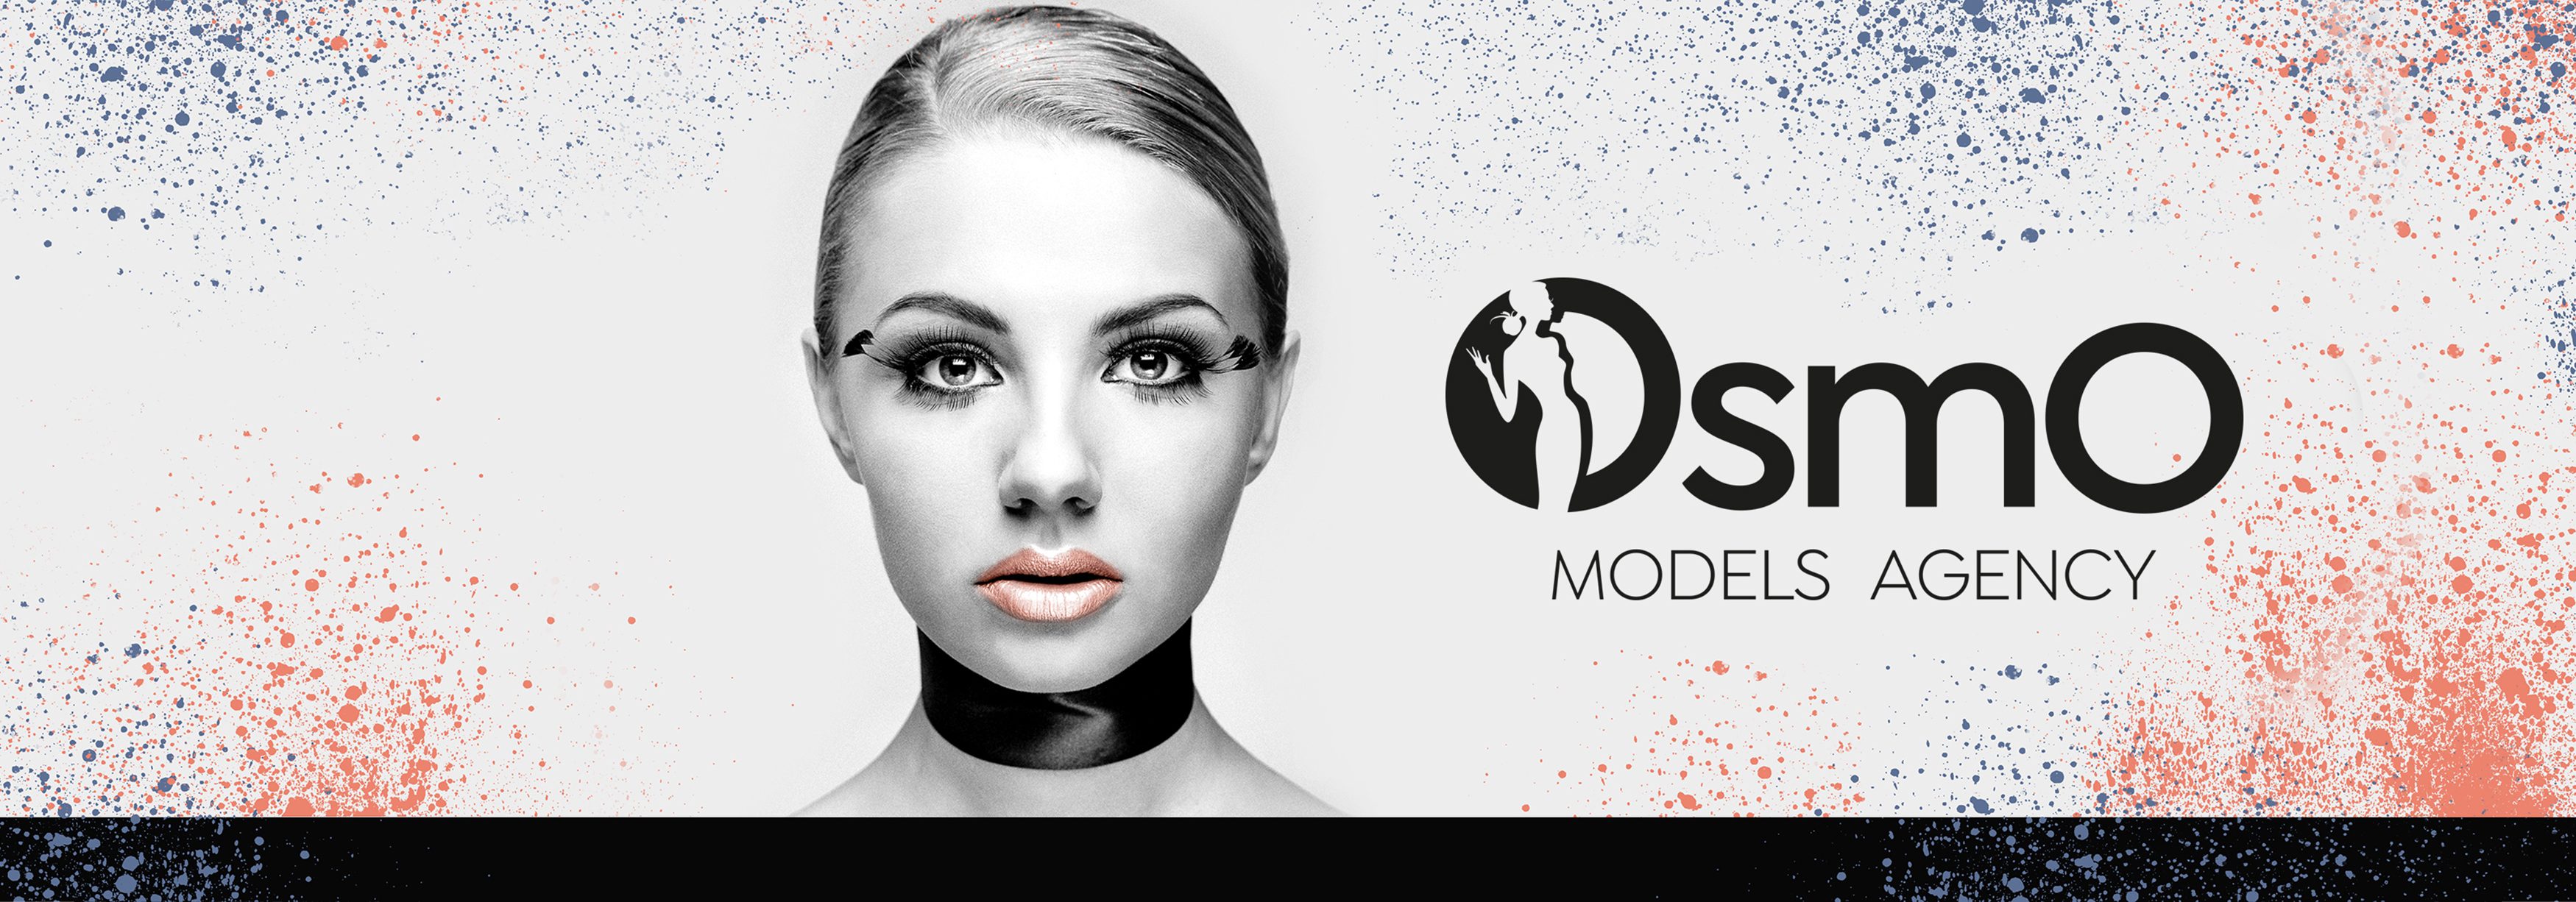 Osmo - models agency